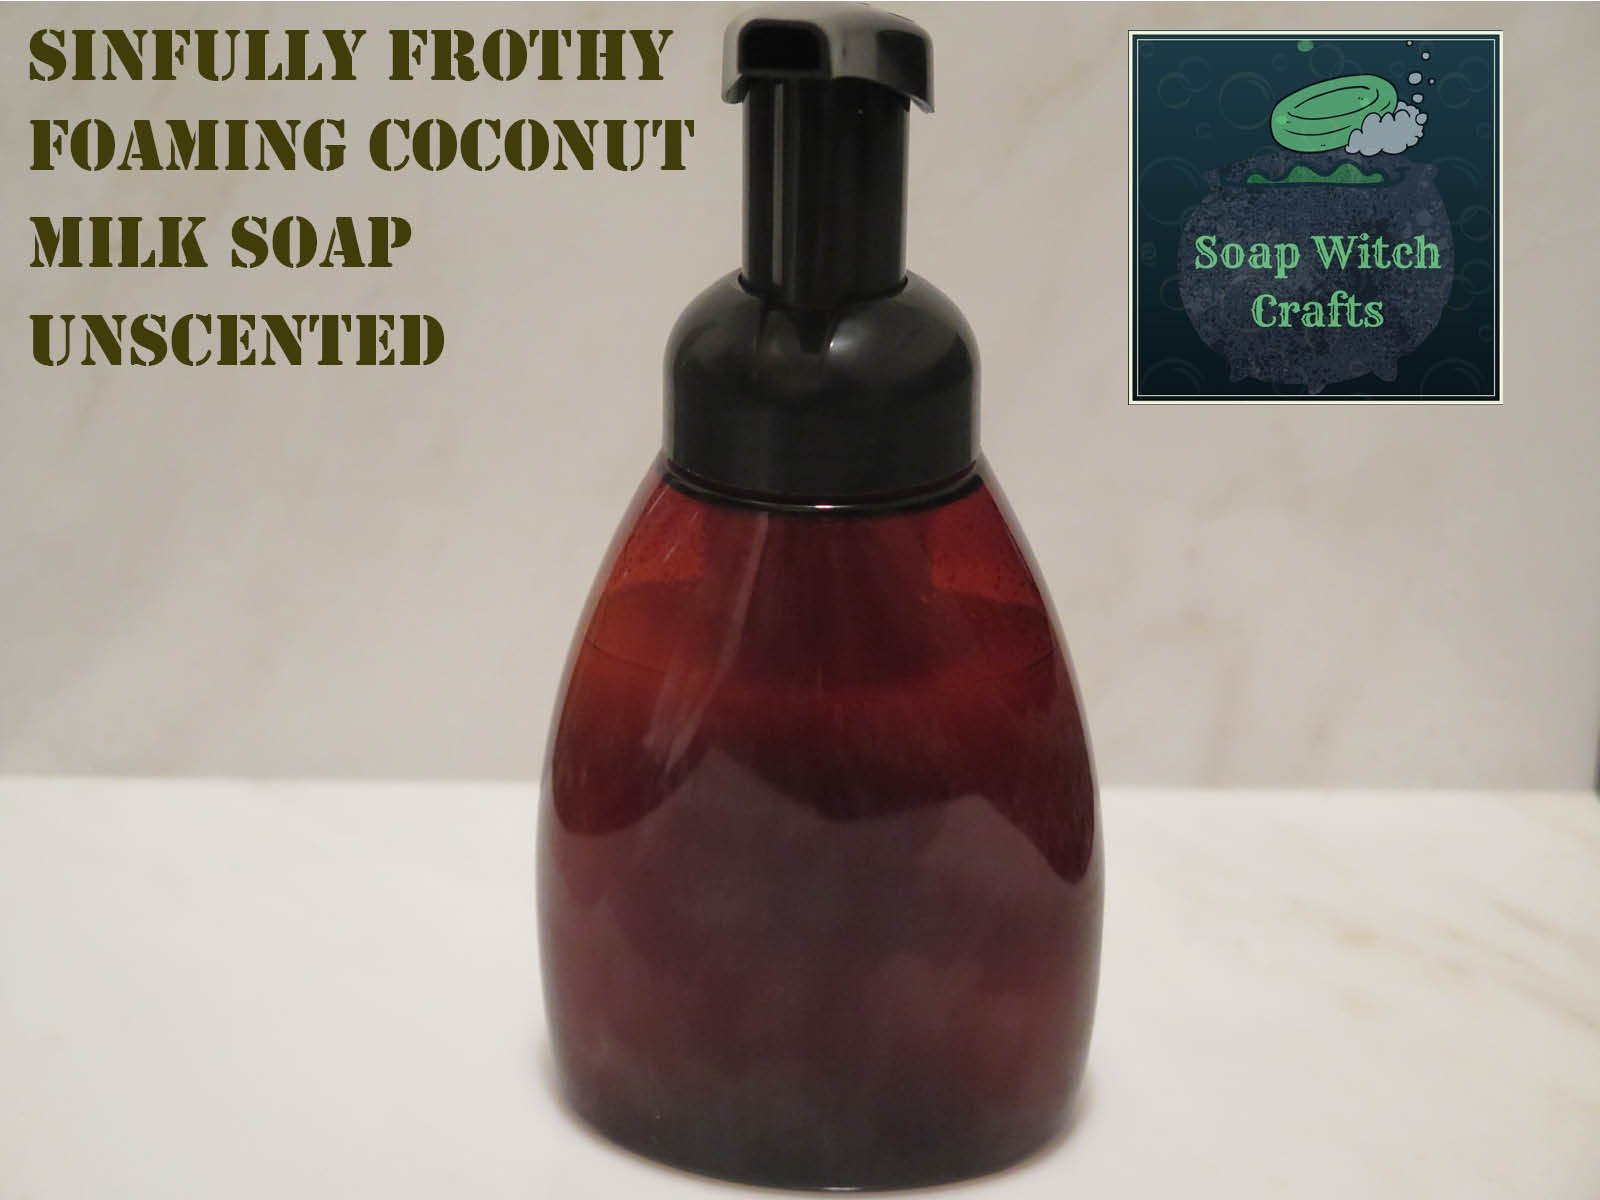 Sinfully Frothy Foaming Coconut Milk Soap - Unscented